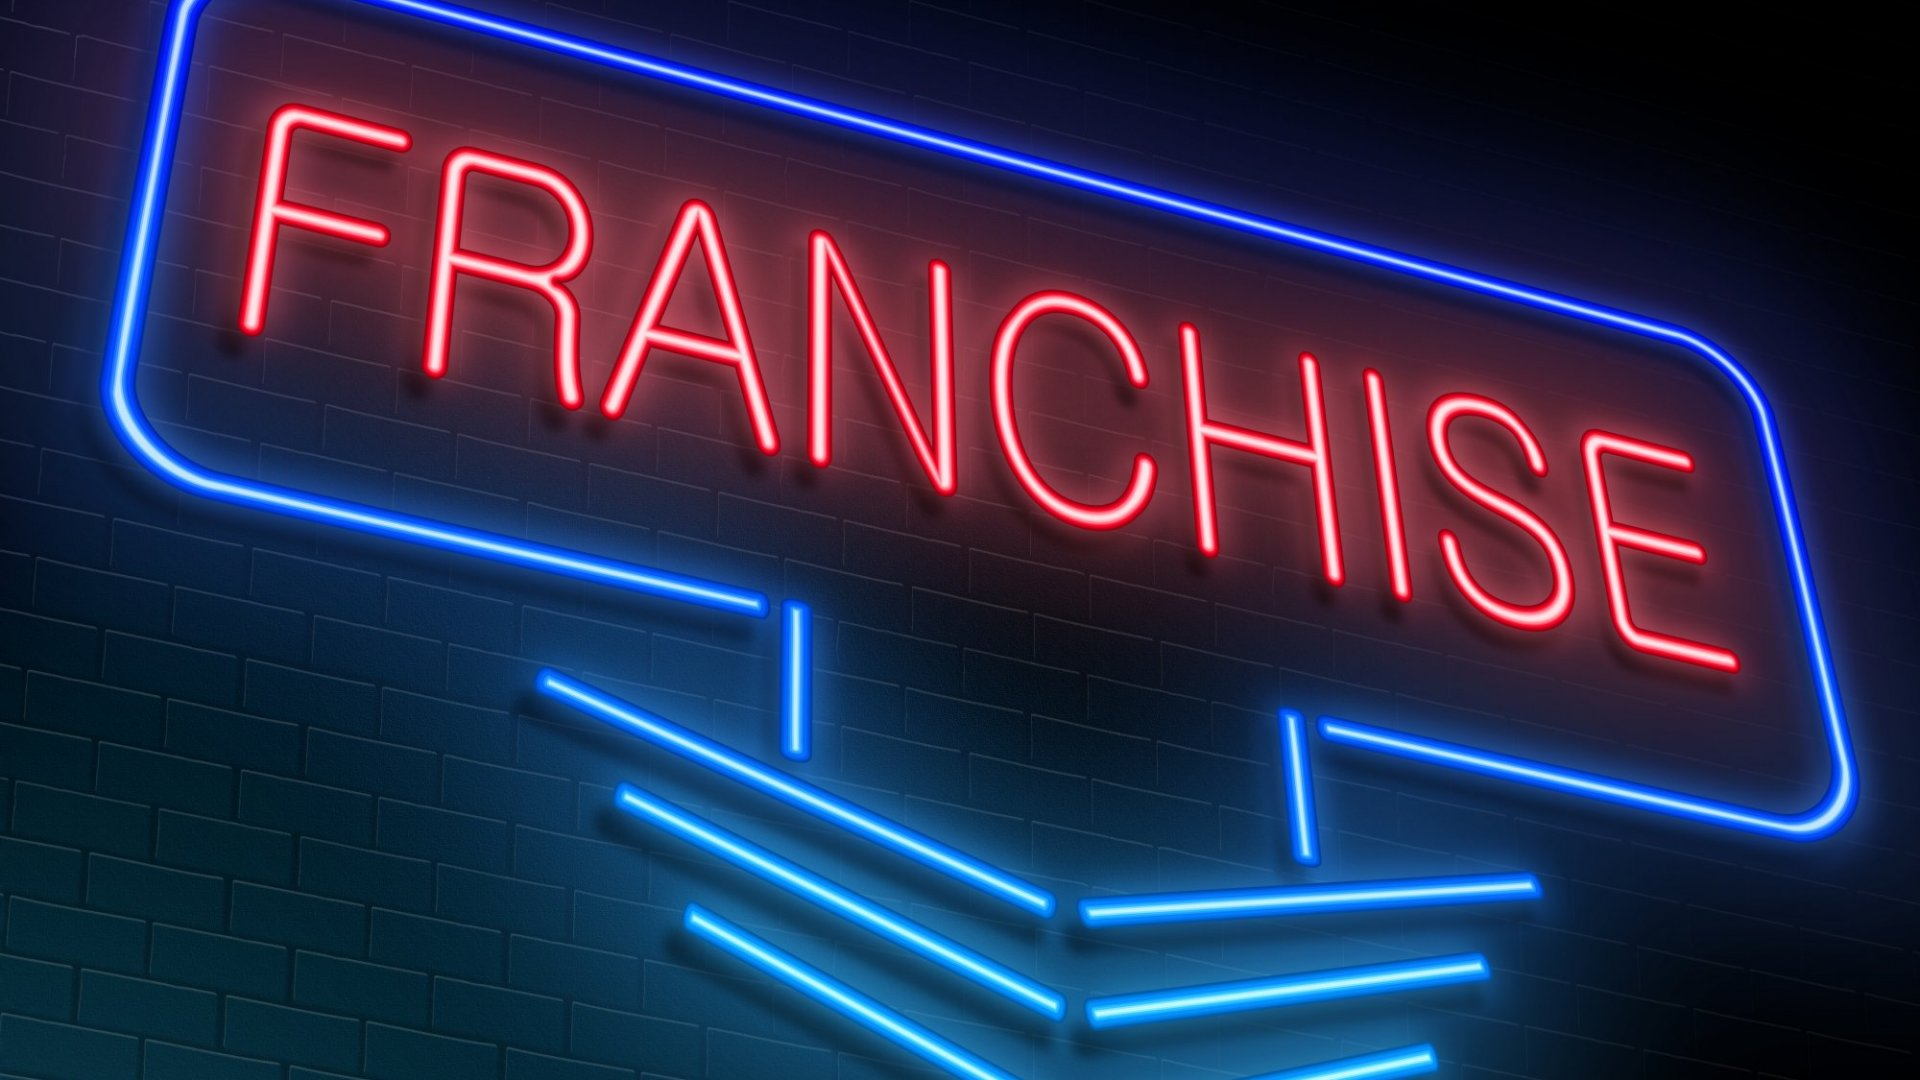 5 Reasons Franchising Beats Starting Your Own Business